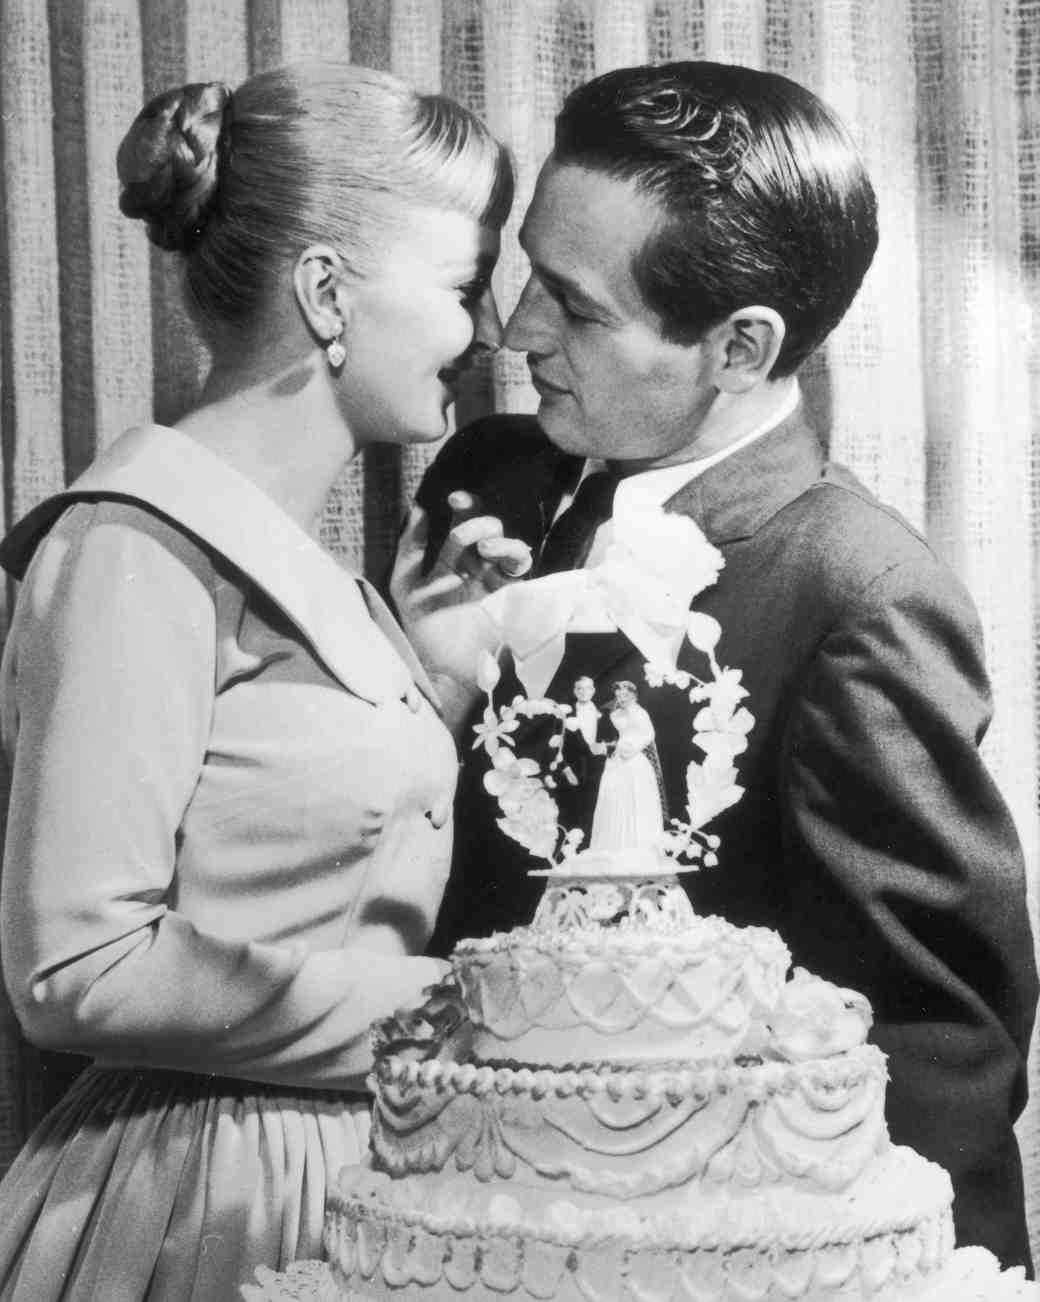 celebrity-vintage-wedding-cakes-paul-newman-joanne-woodward-1686495-1015.jpg